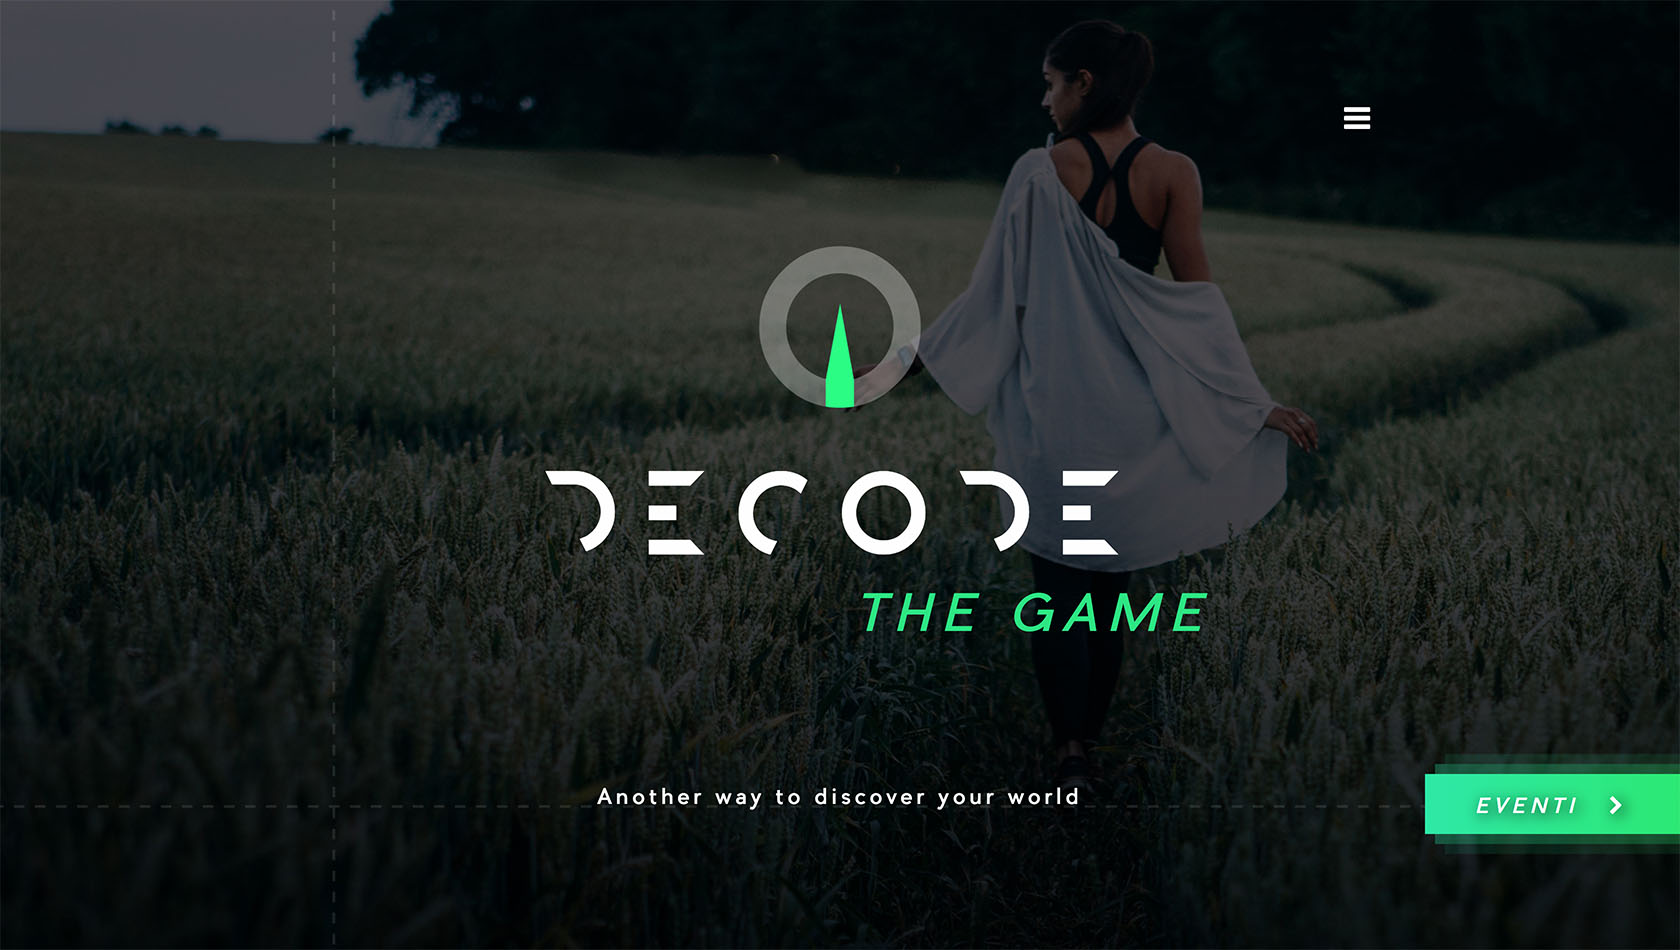 Web designer and Develoeper Project of Decode